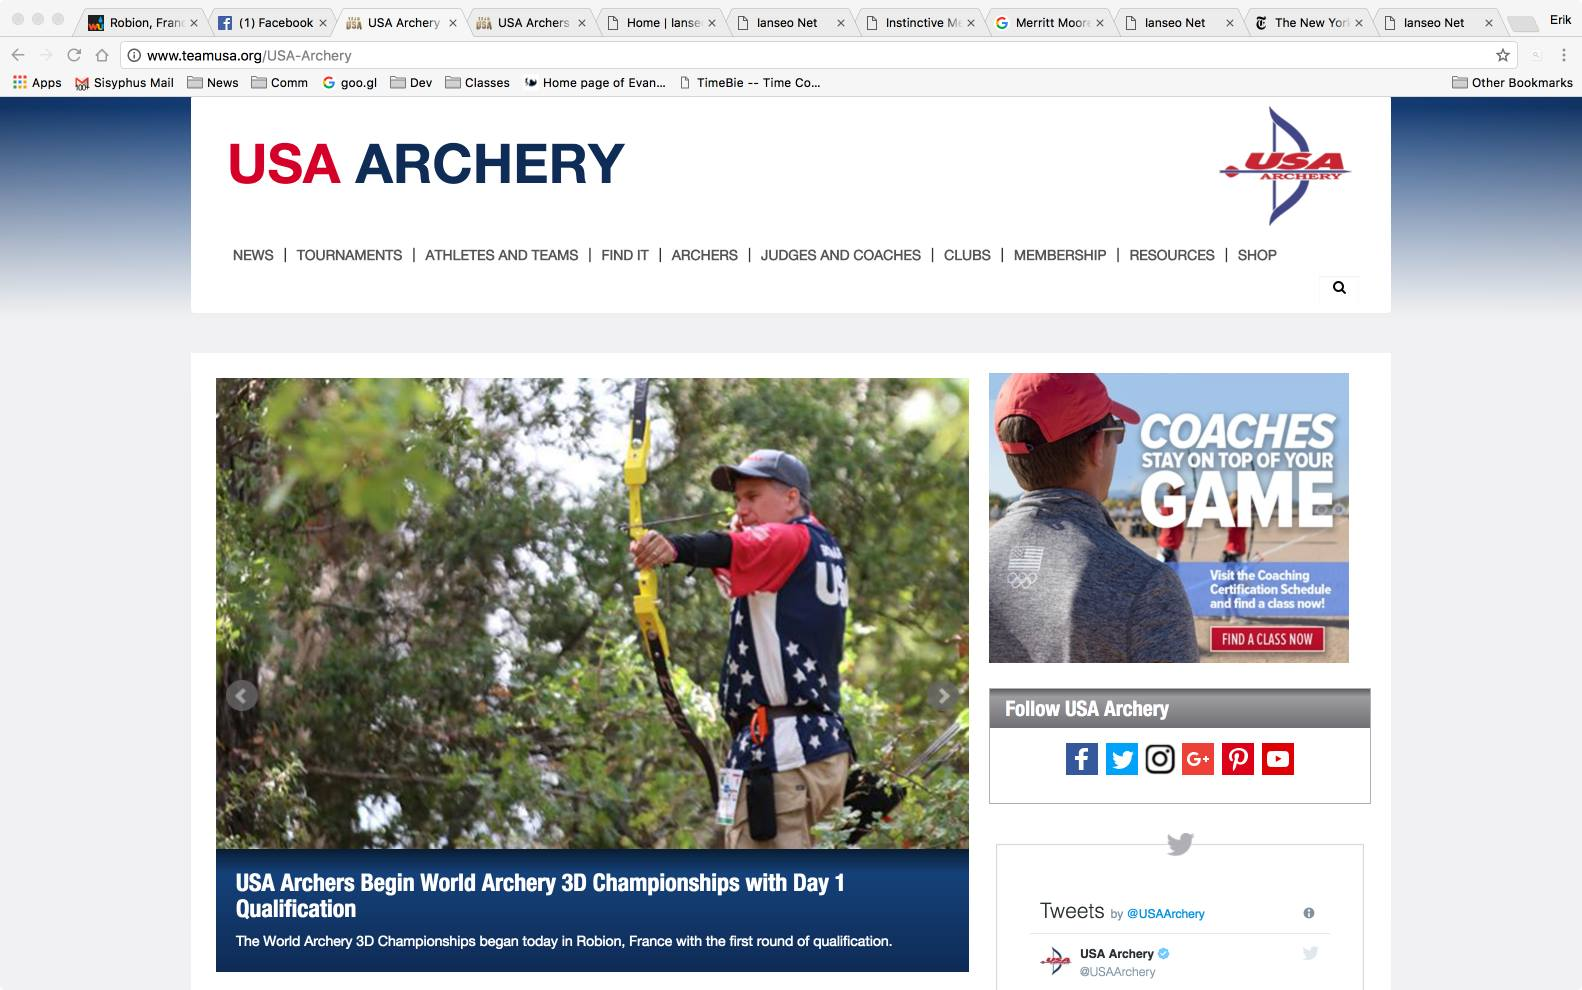 I made the front page of the USA Archery site